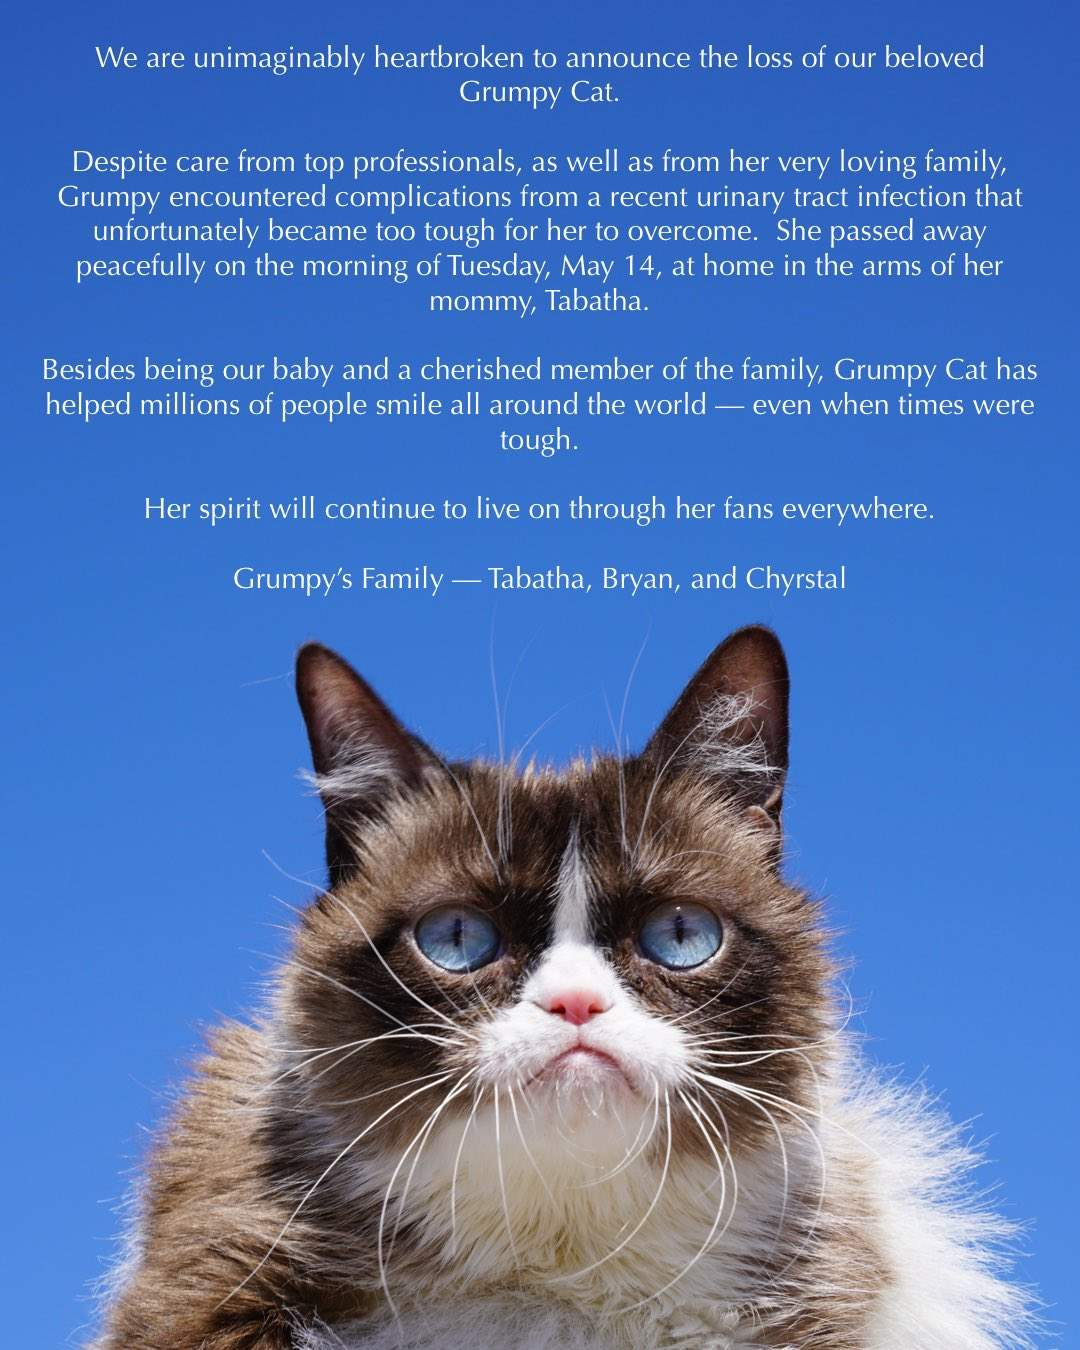 Grumpy Cat death announcement